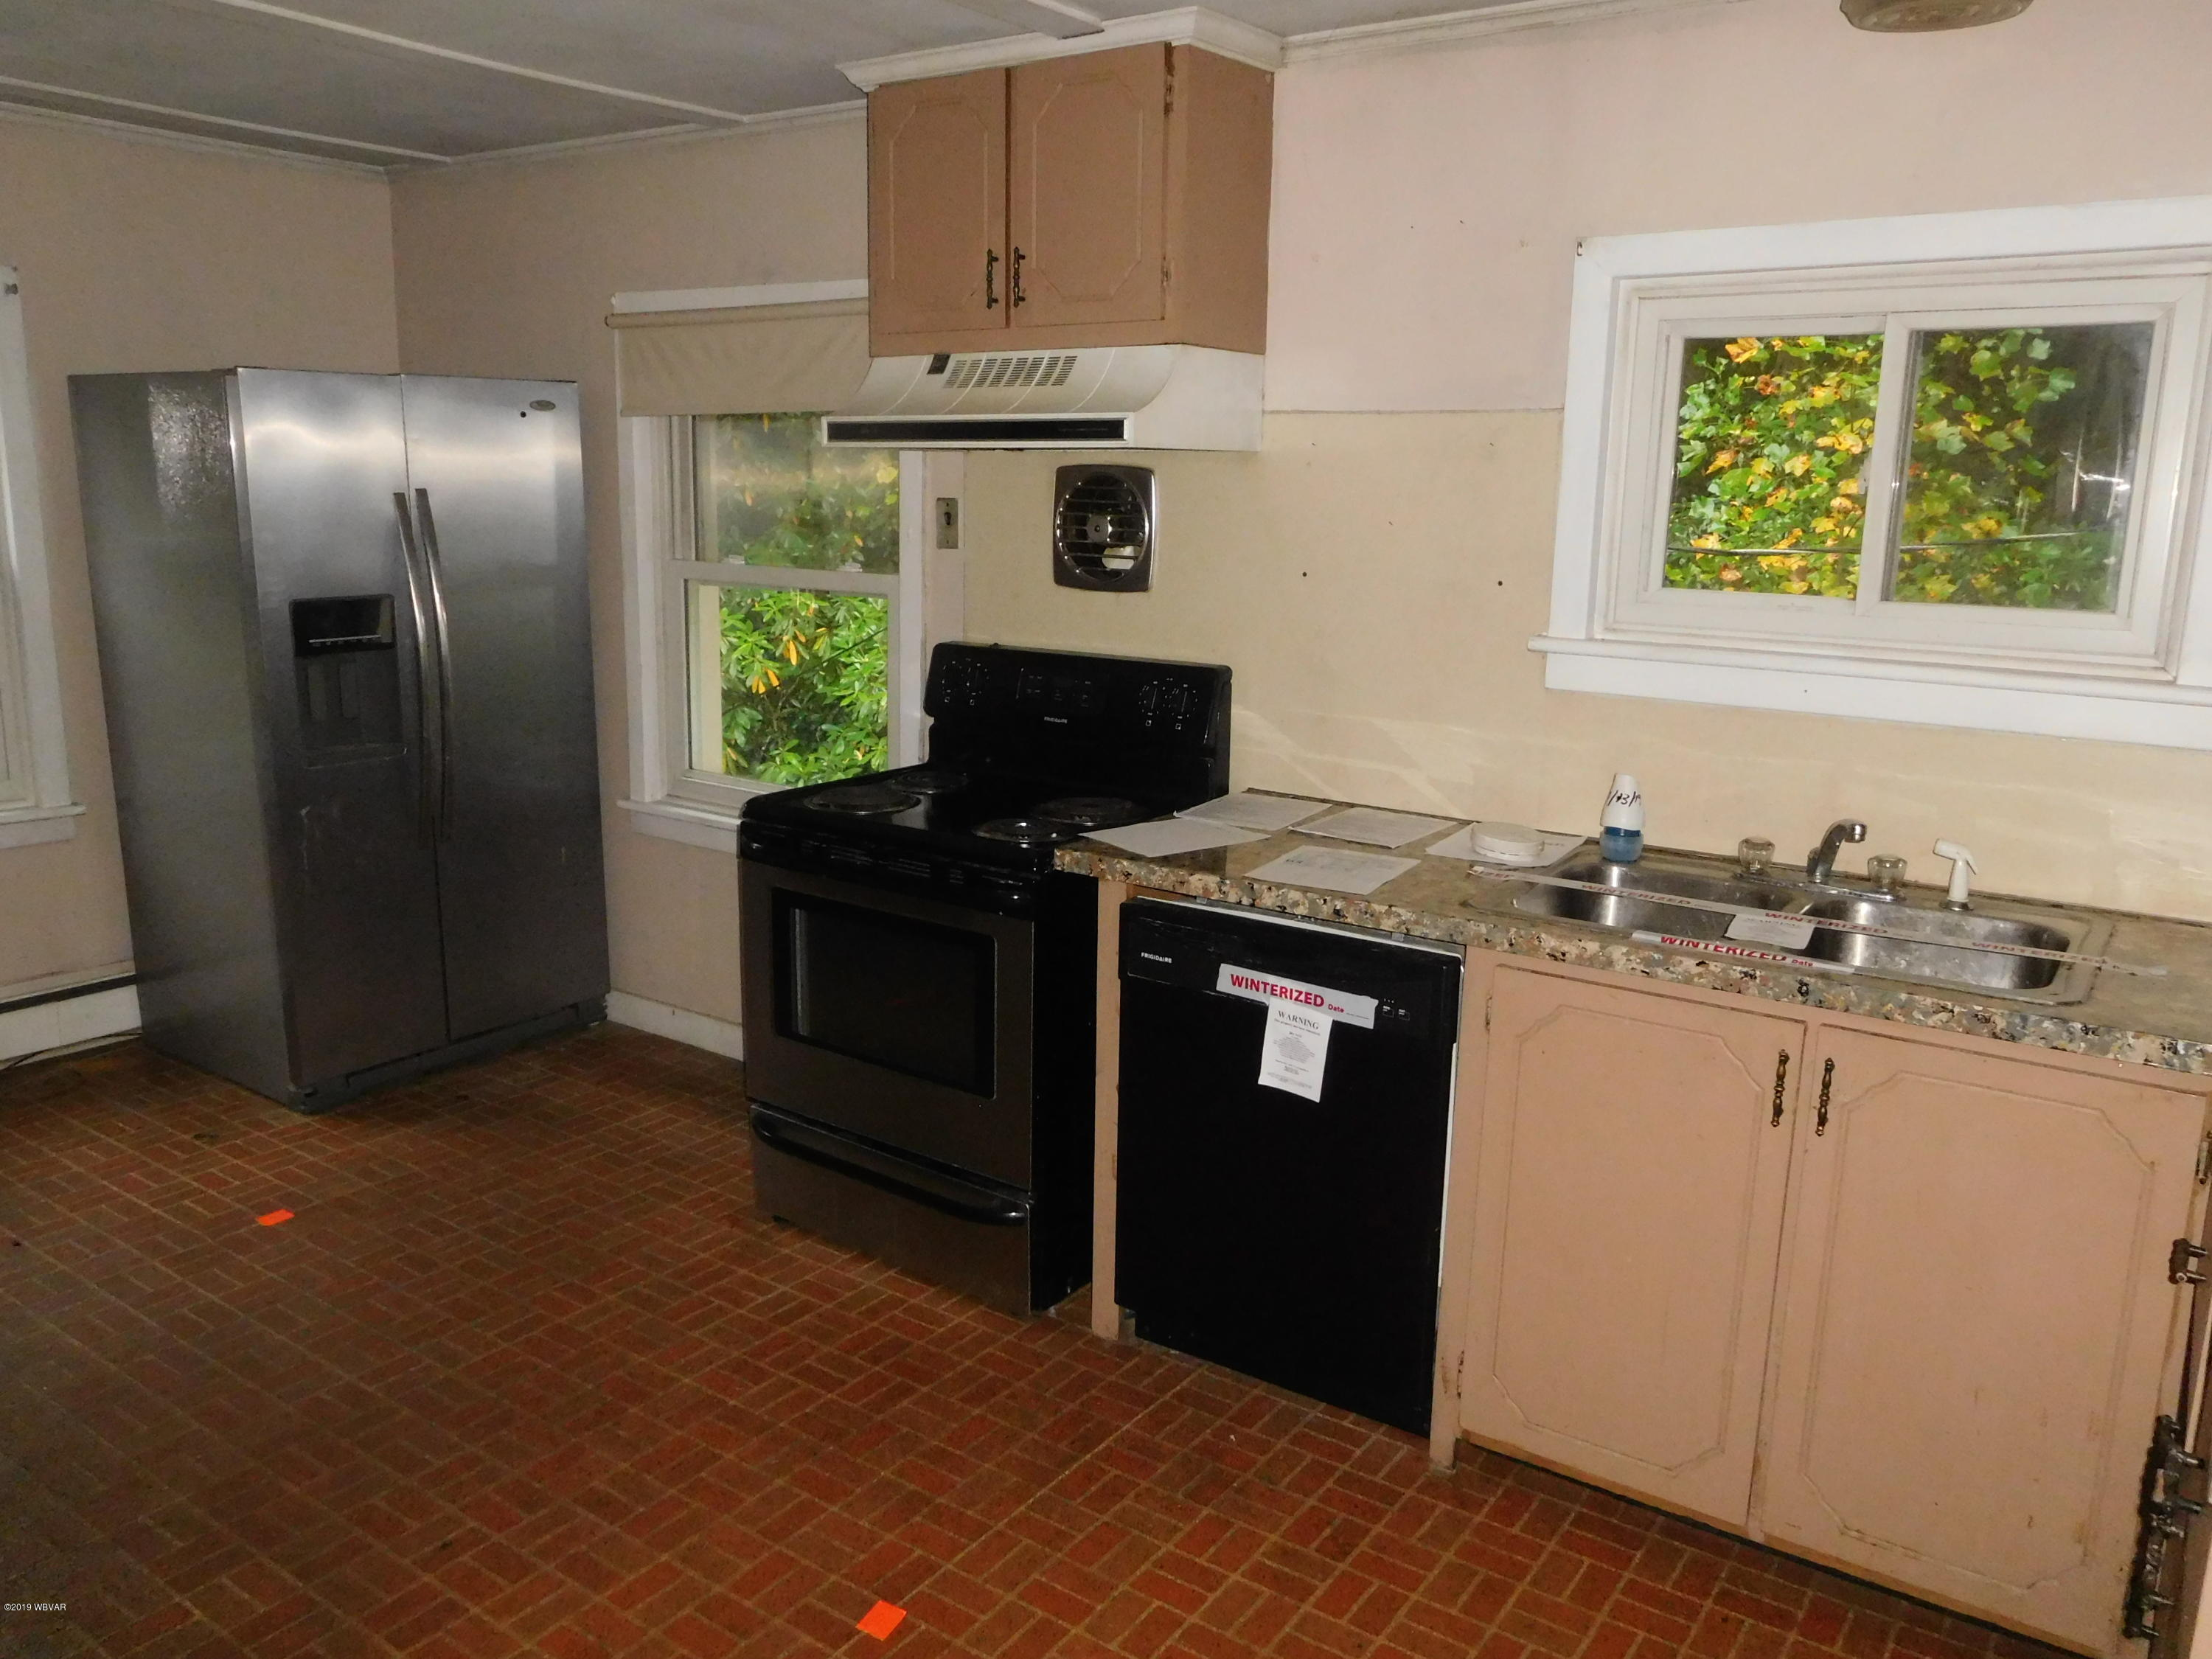 7128 ROUTE 87 HIGHWAY,Williamsport,PA 17701,3 Bedrooms Bedrooms,2 BathroomsBathrooms,Residential,ROUTE 87,WB-88743